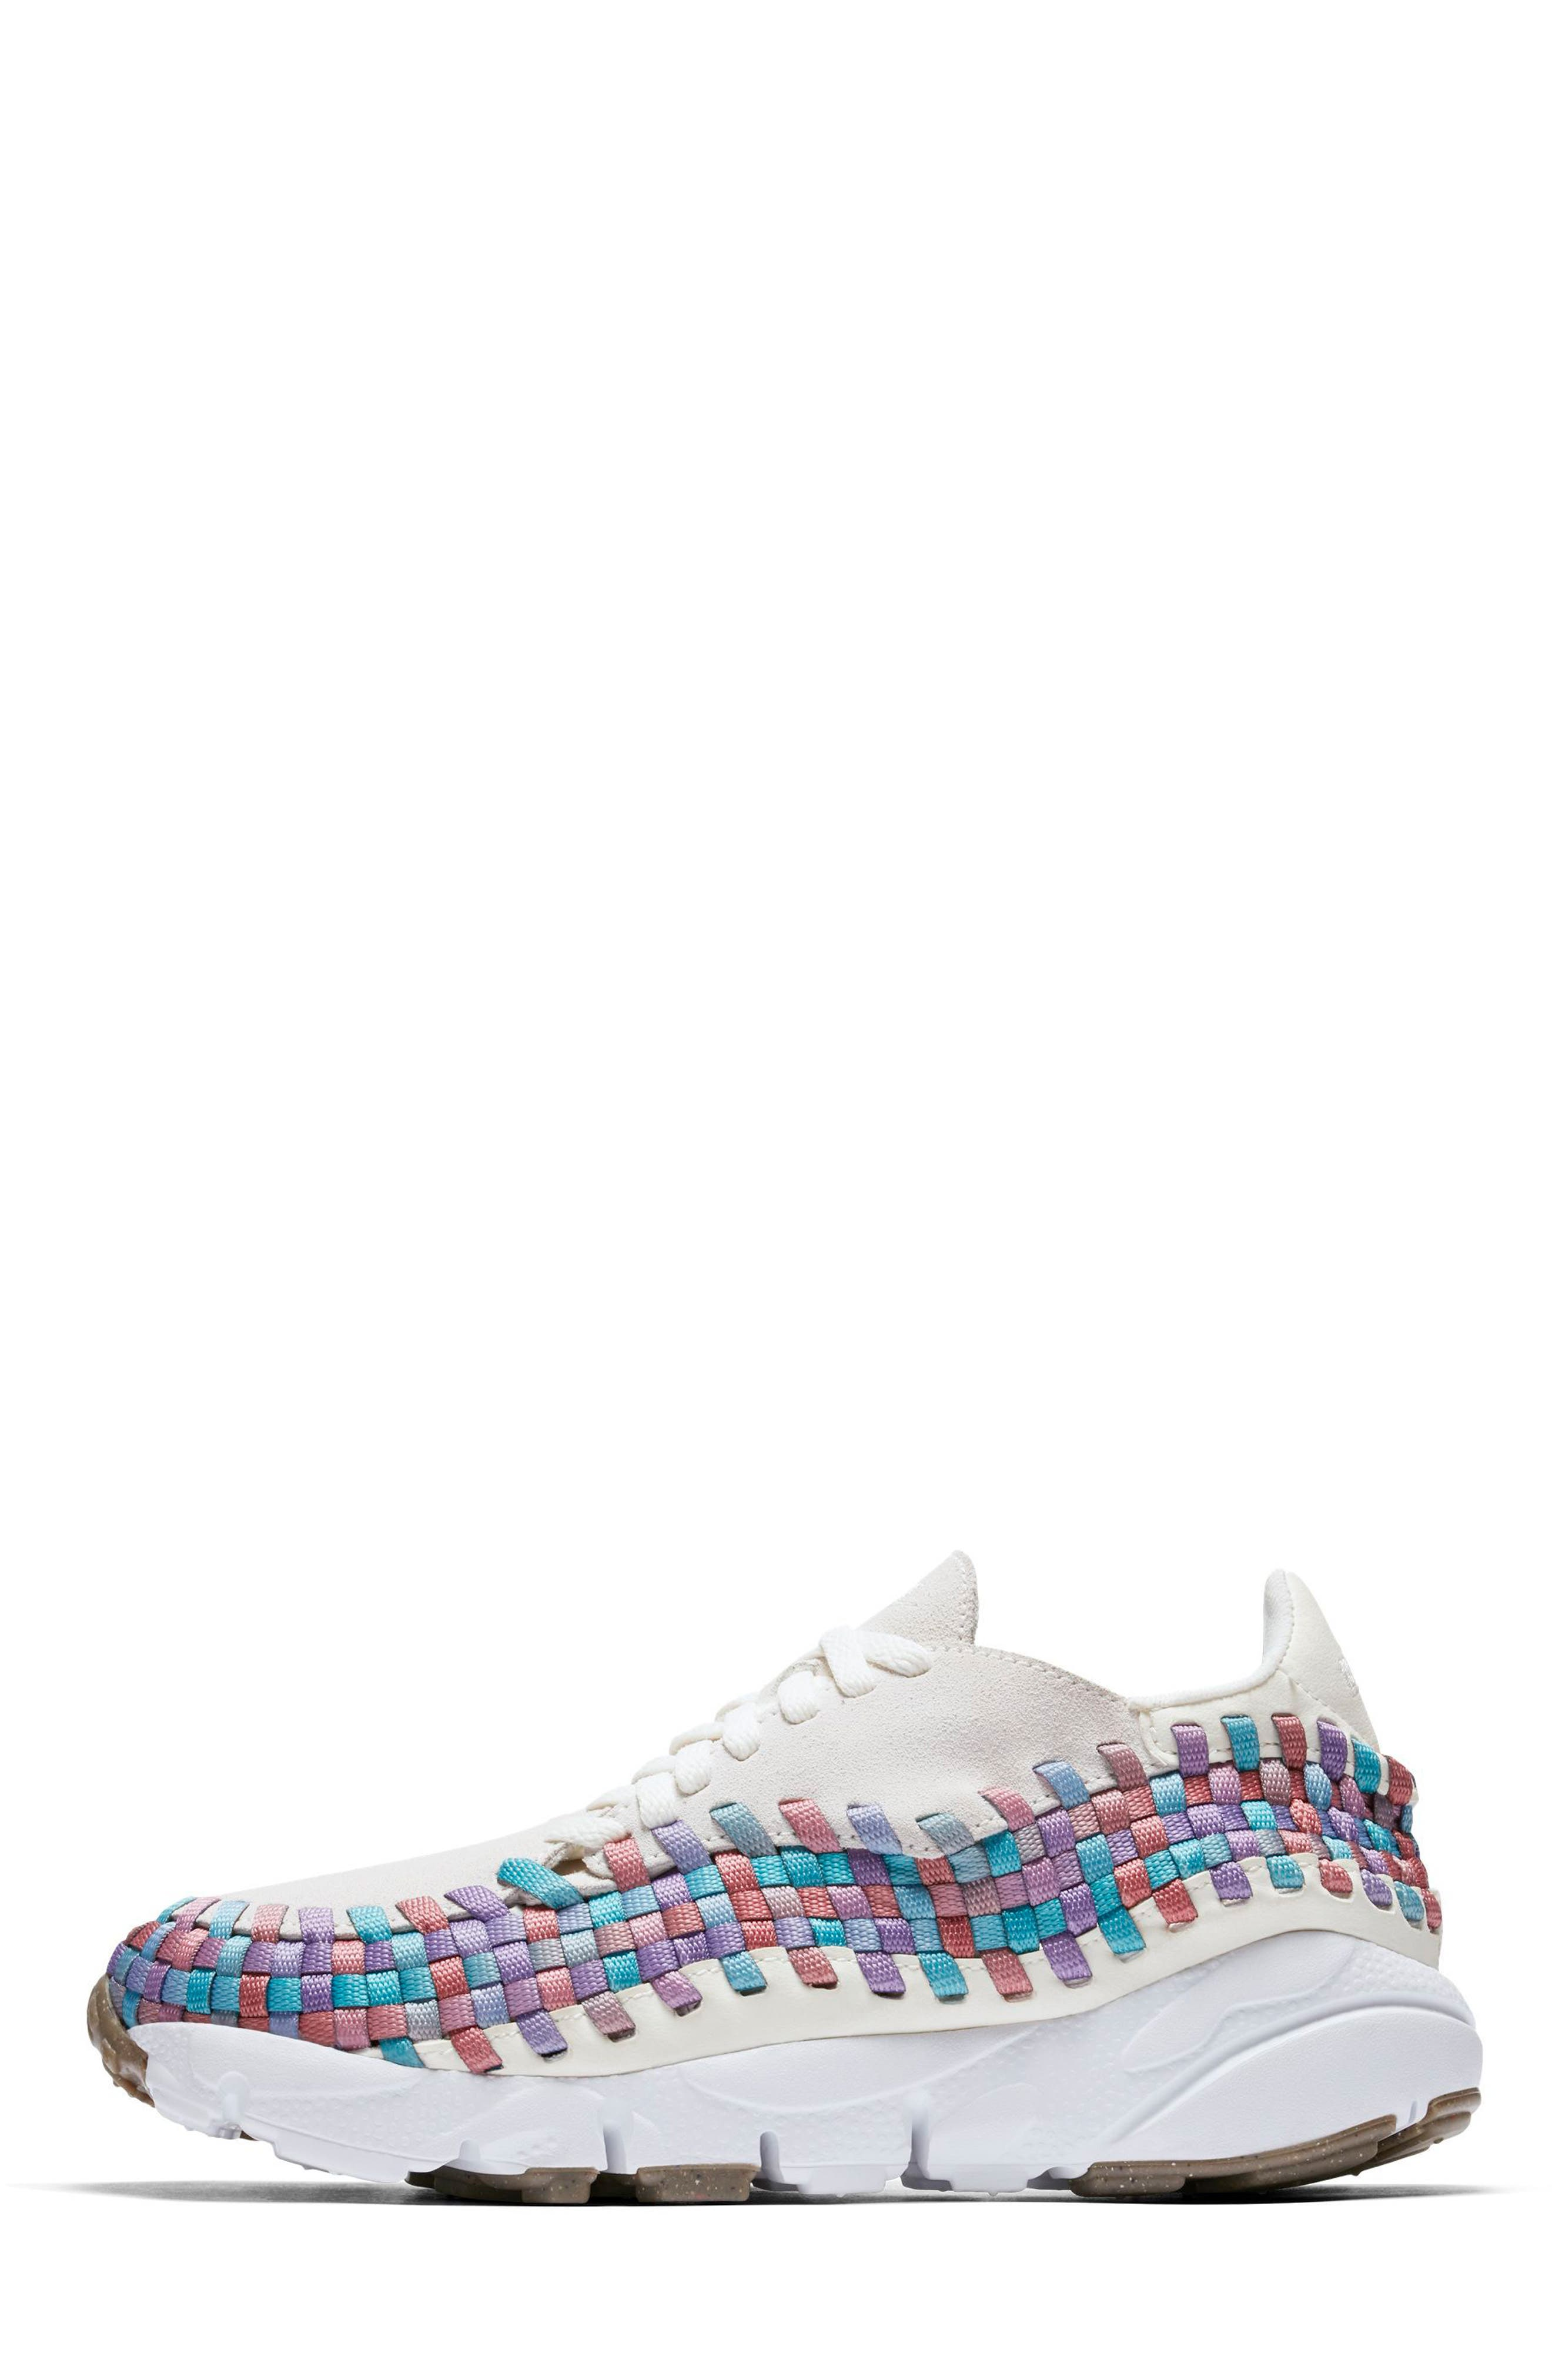 Air Footscape Woven Sneaker,                             Alternate thumbnail 2, color,                             Sail/ White/ Red/ Teal/ Gum